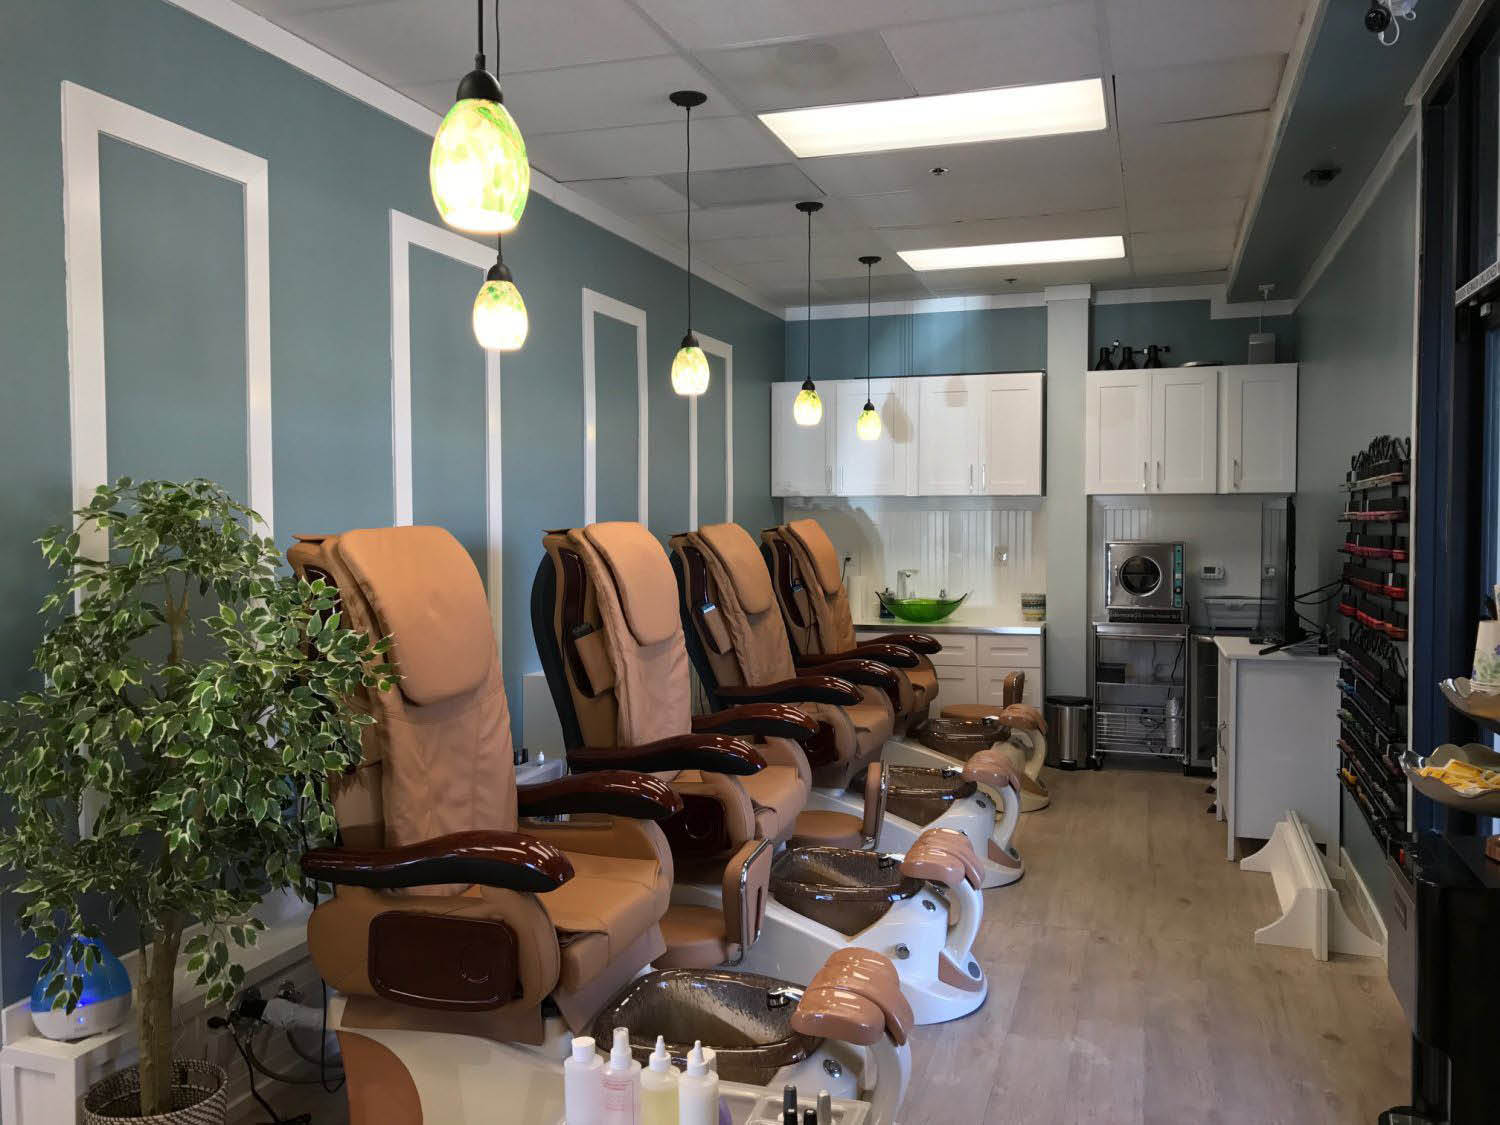 Relax while we restore your beauty at Renu21 Skin Care, Facial & Nail Spa in San Jose, CA